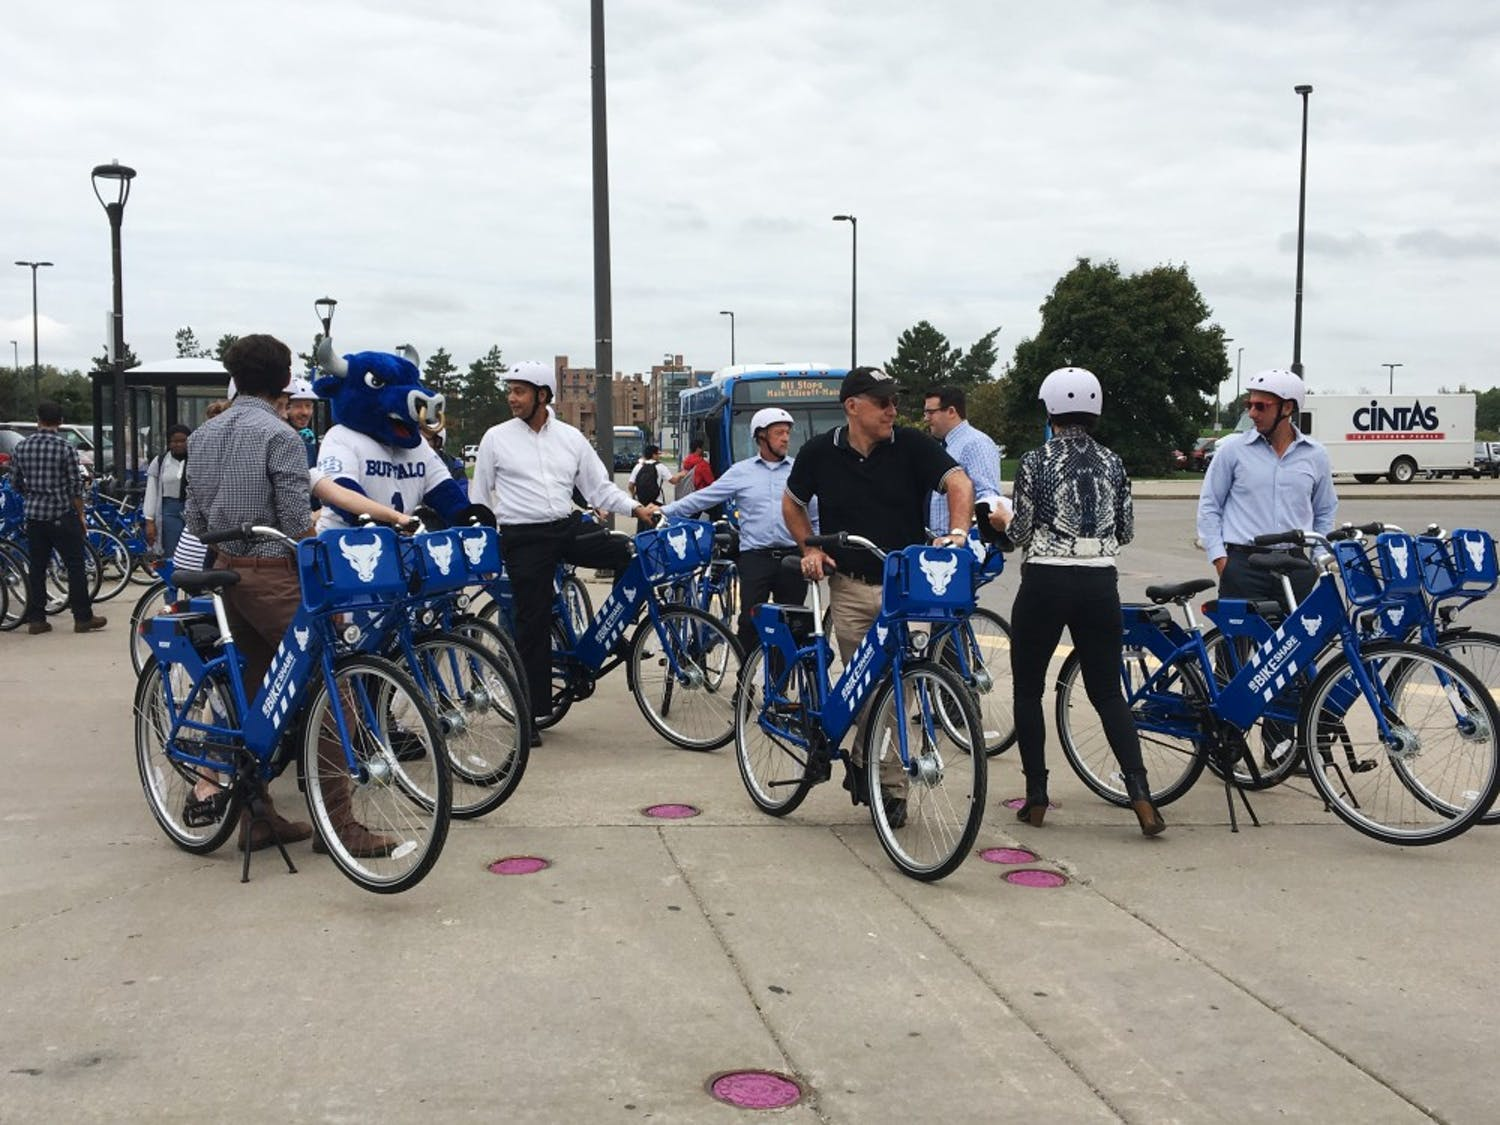 UB's parking and transportation has partnered with Reddy BikeShare to distribute an additional 50 rent-able bicycles on North and South Campus. Students and faculty can access the new GPS-enabled bicycles and their locations through the Reddy BikeShare app.